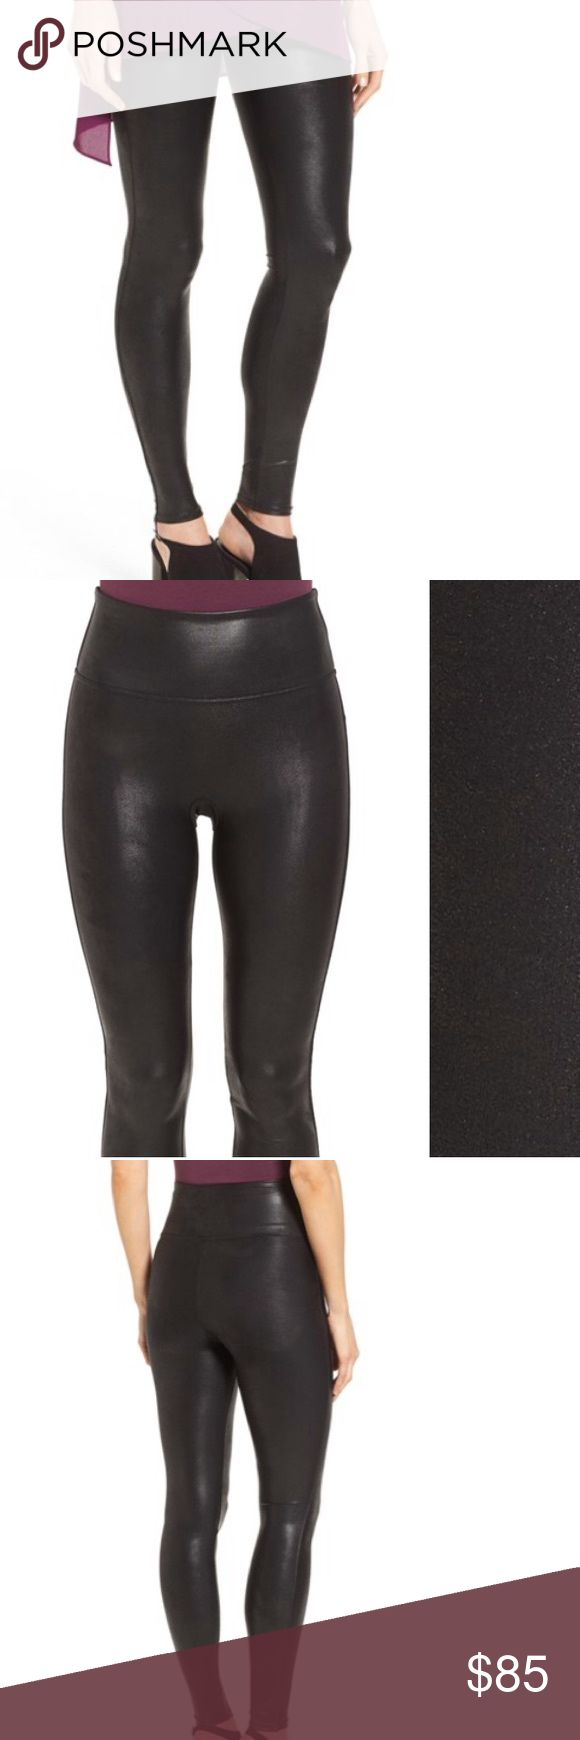 Spanx faux leather leggings (authentic) Spanx ready to wow faux leather leggings. NWT size large! Black... The absolute best faux leather leggings you will ever find! ONLY selling because I have two larges now SPANX Pants